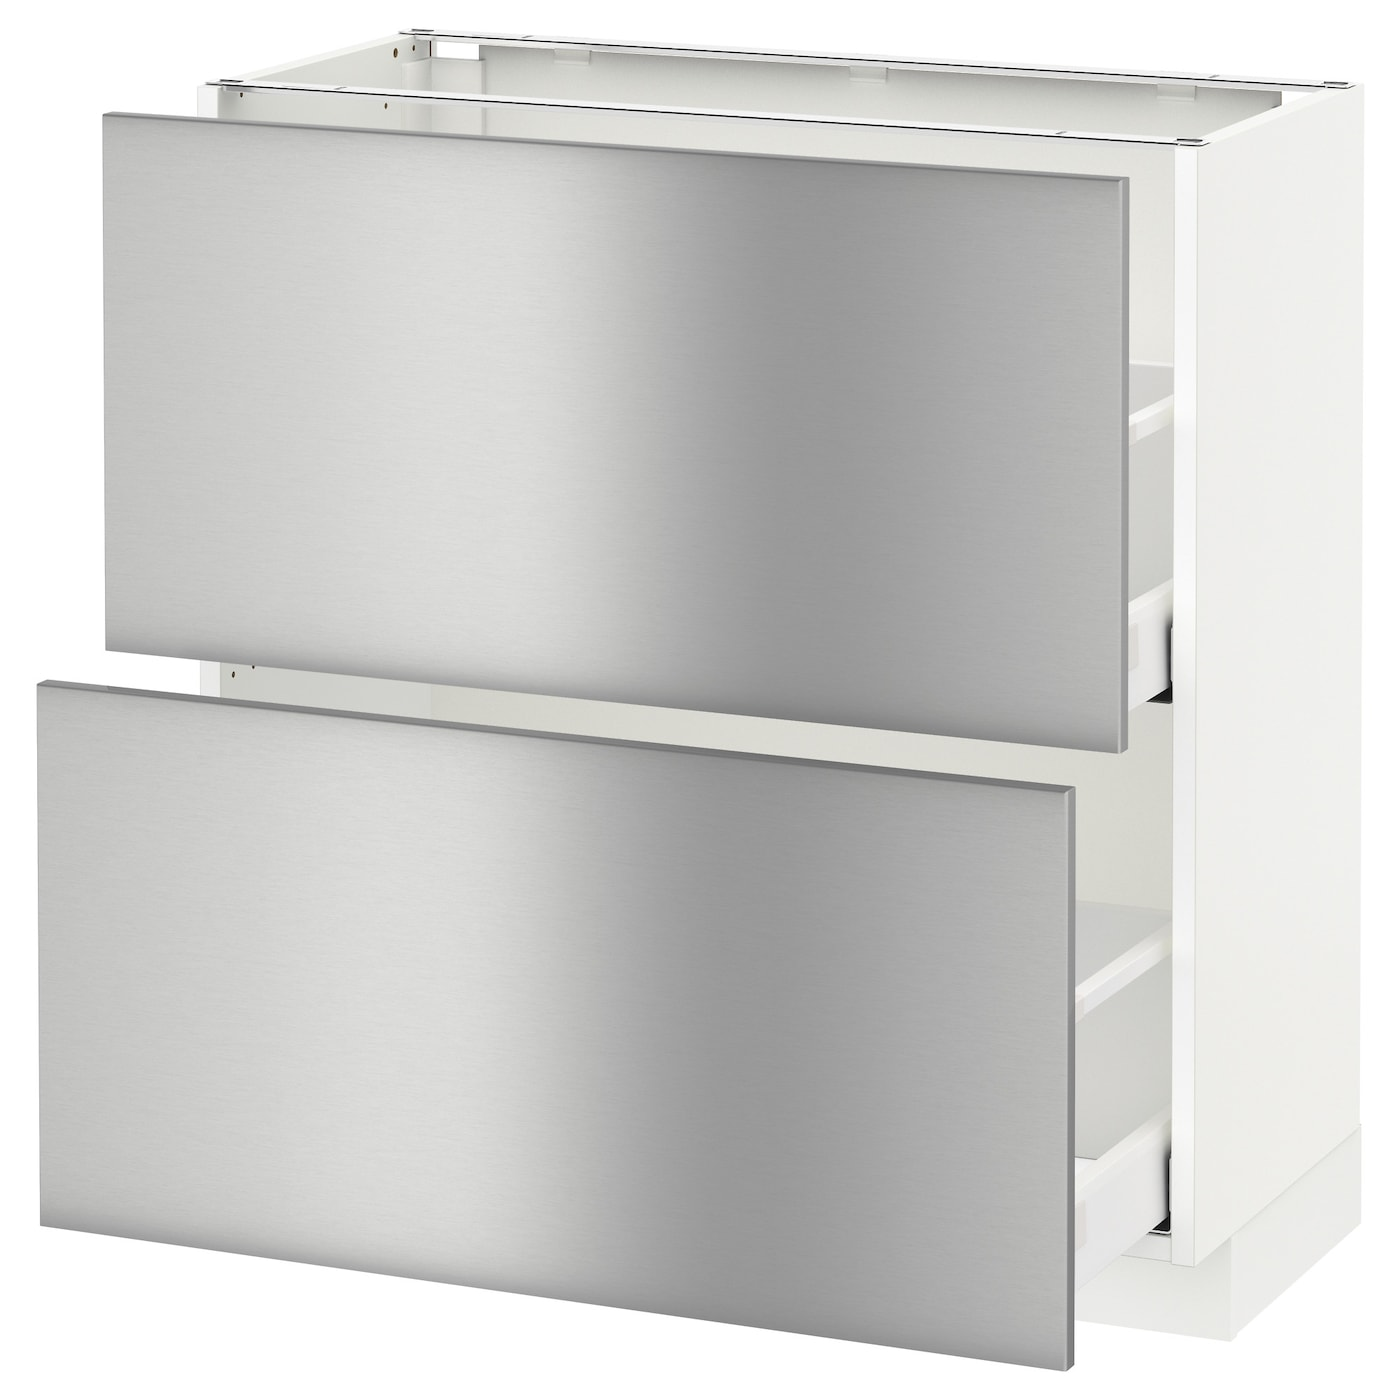 Stainless Steel Cabinets For Kitchen: METOD/MAXIMERA Base Cabinet With 2 Drawers White/grevsta